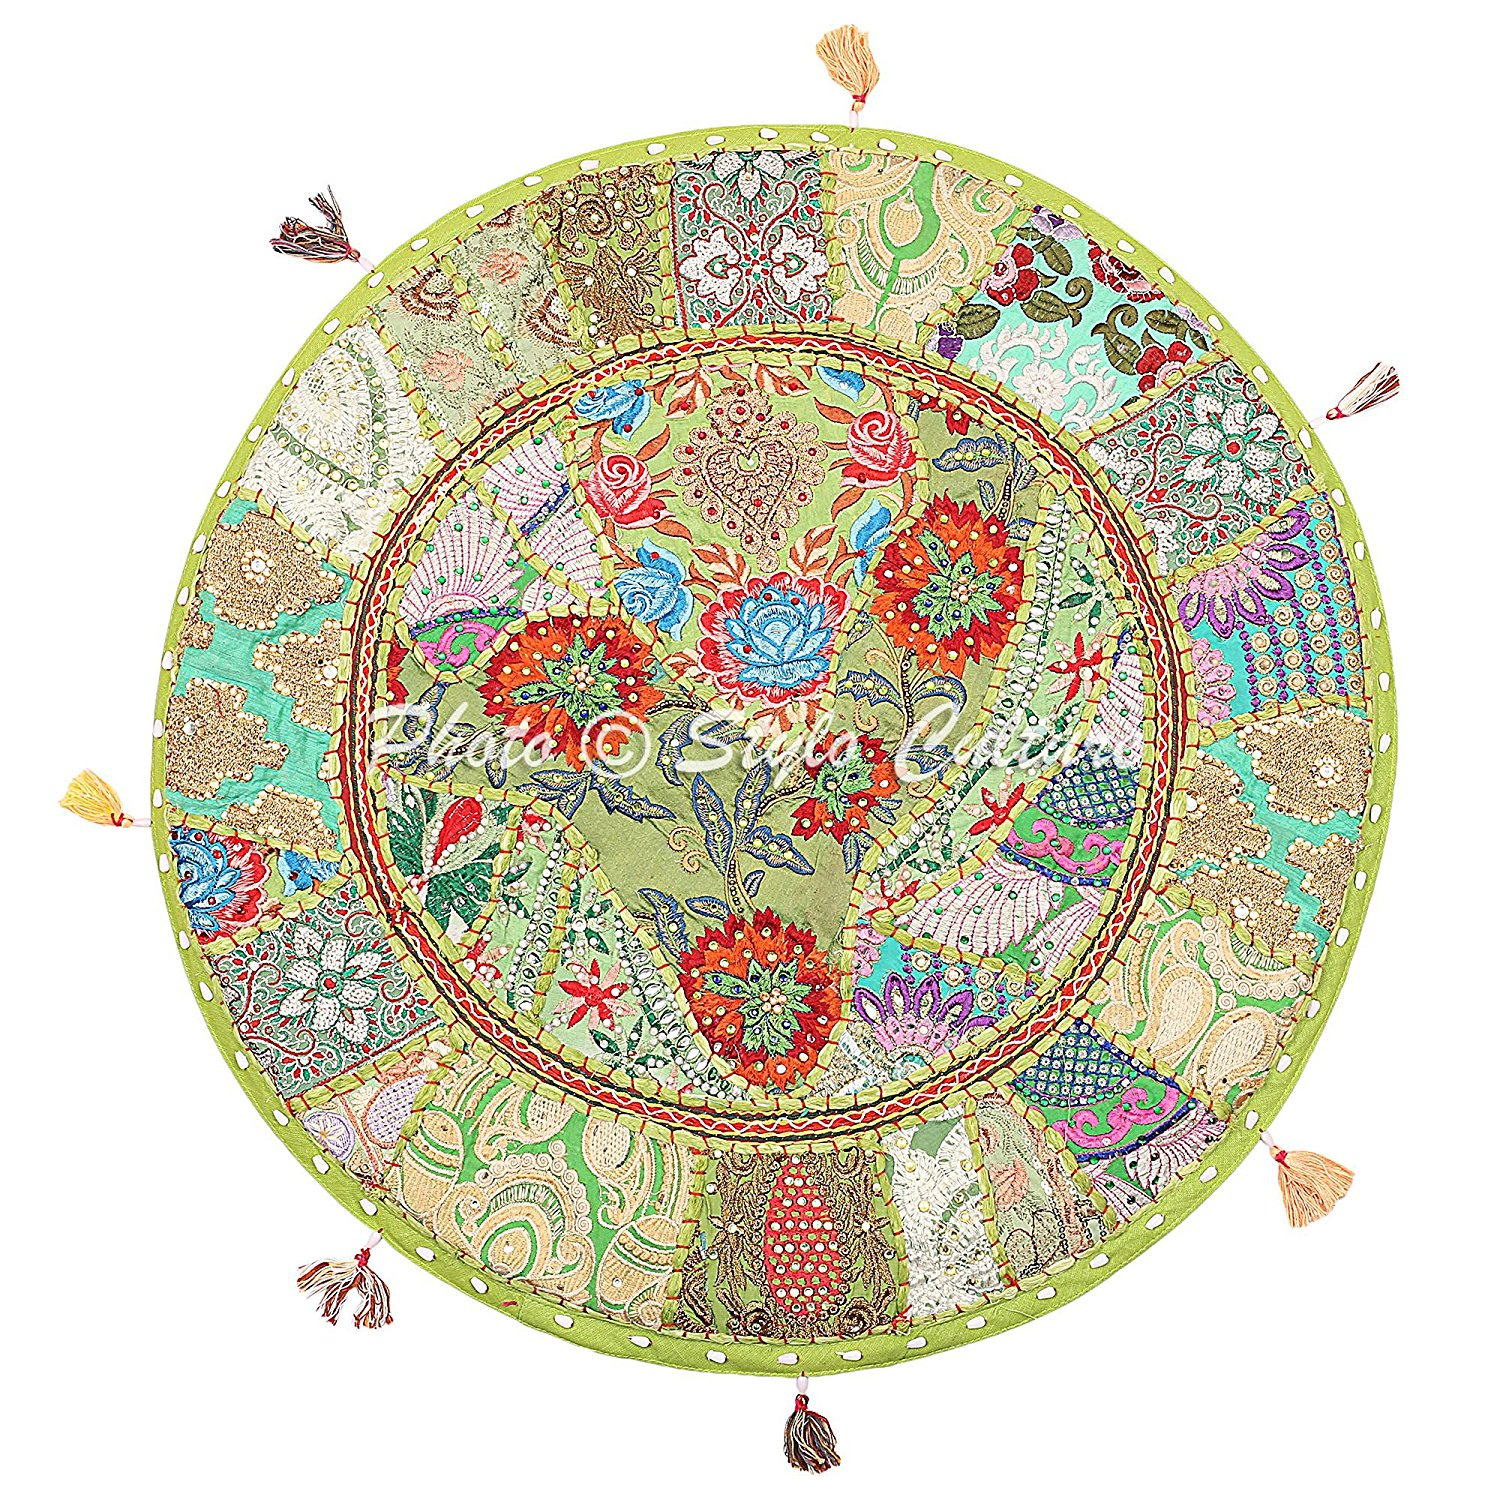 "Stylo Culture Cotton Traditional Throw Indian Floor Pillow Cover Vintage Embroidered Patchwork Green 22"" Indian Floor Cushion Seat Pouf Cover"